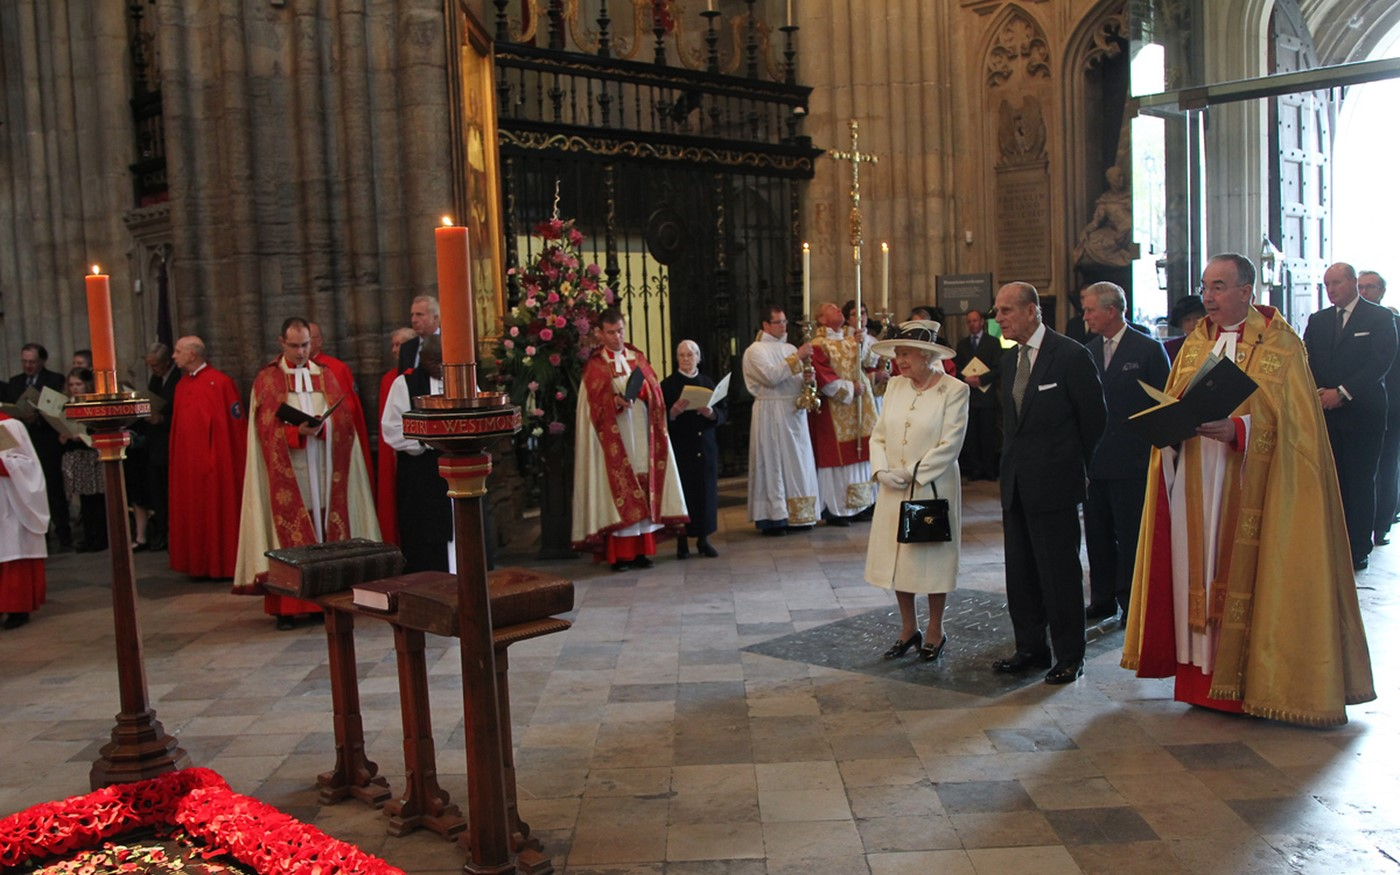 The royal party at the start of the service